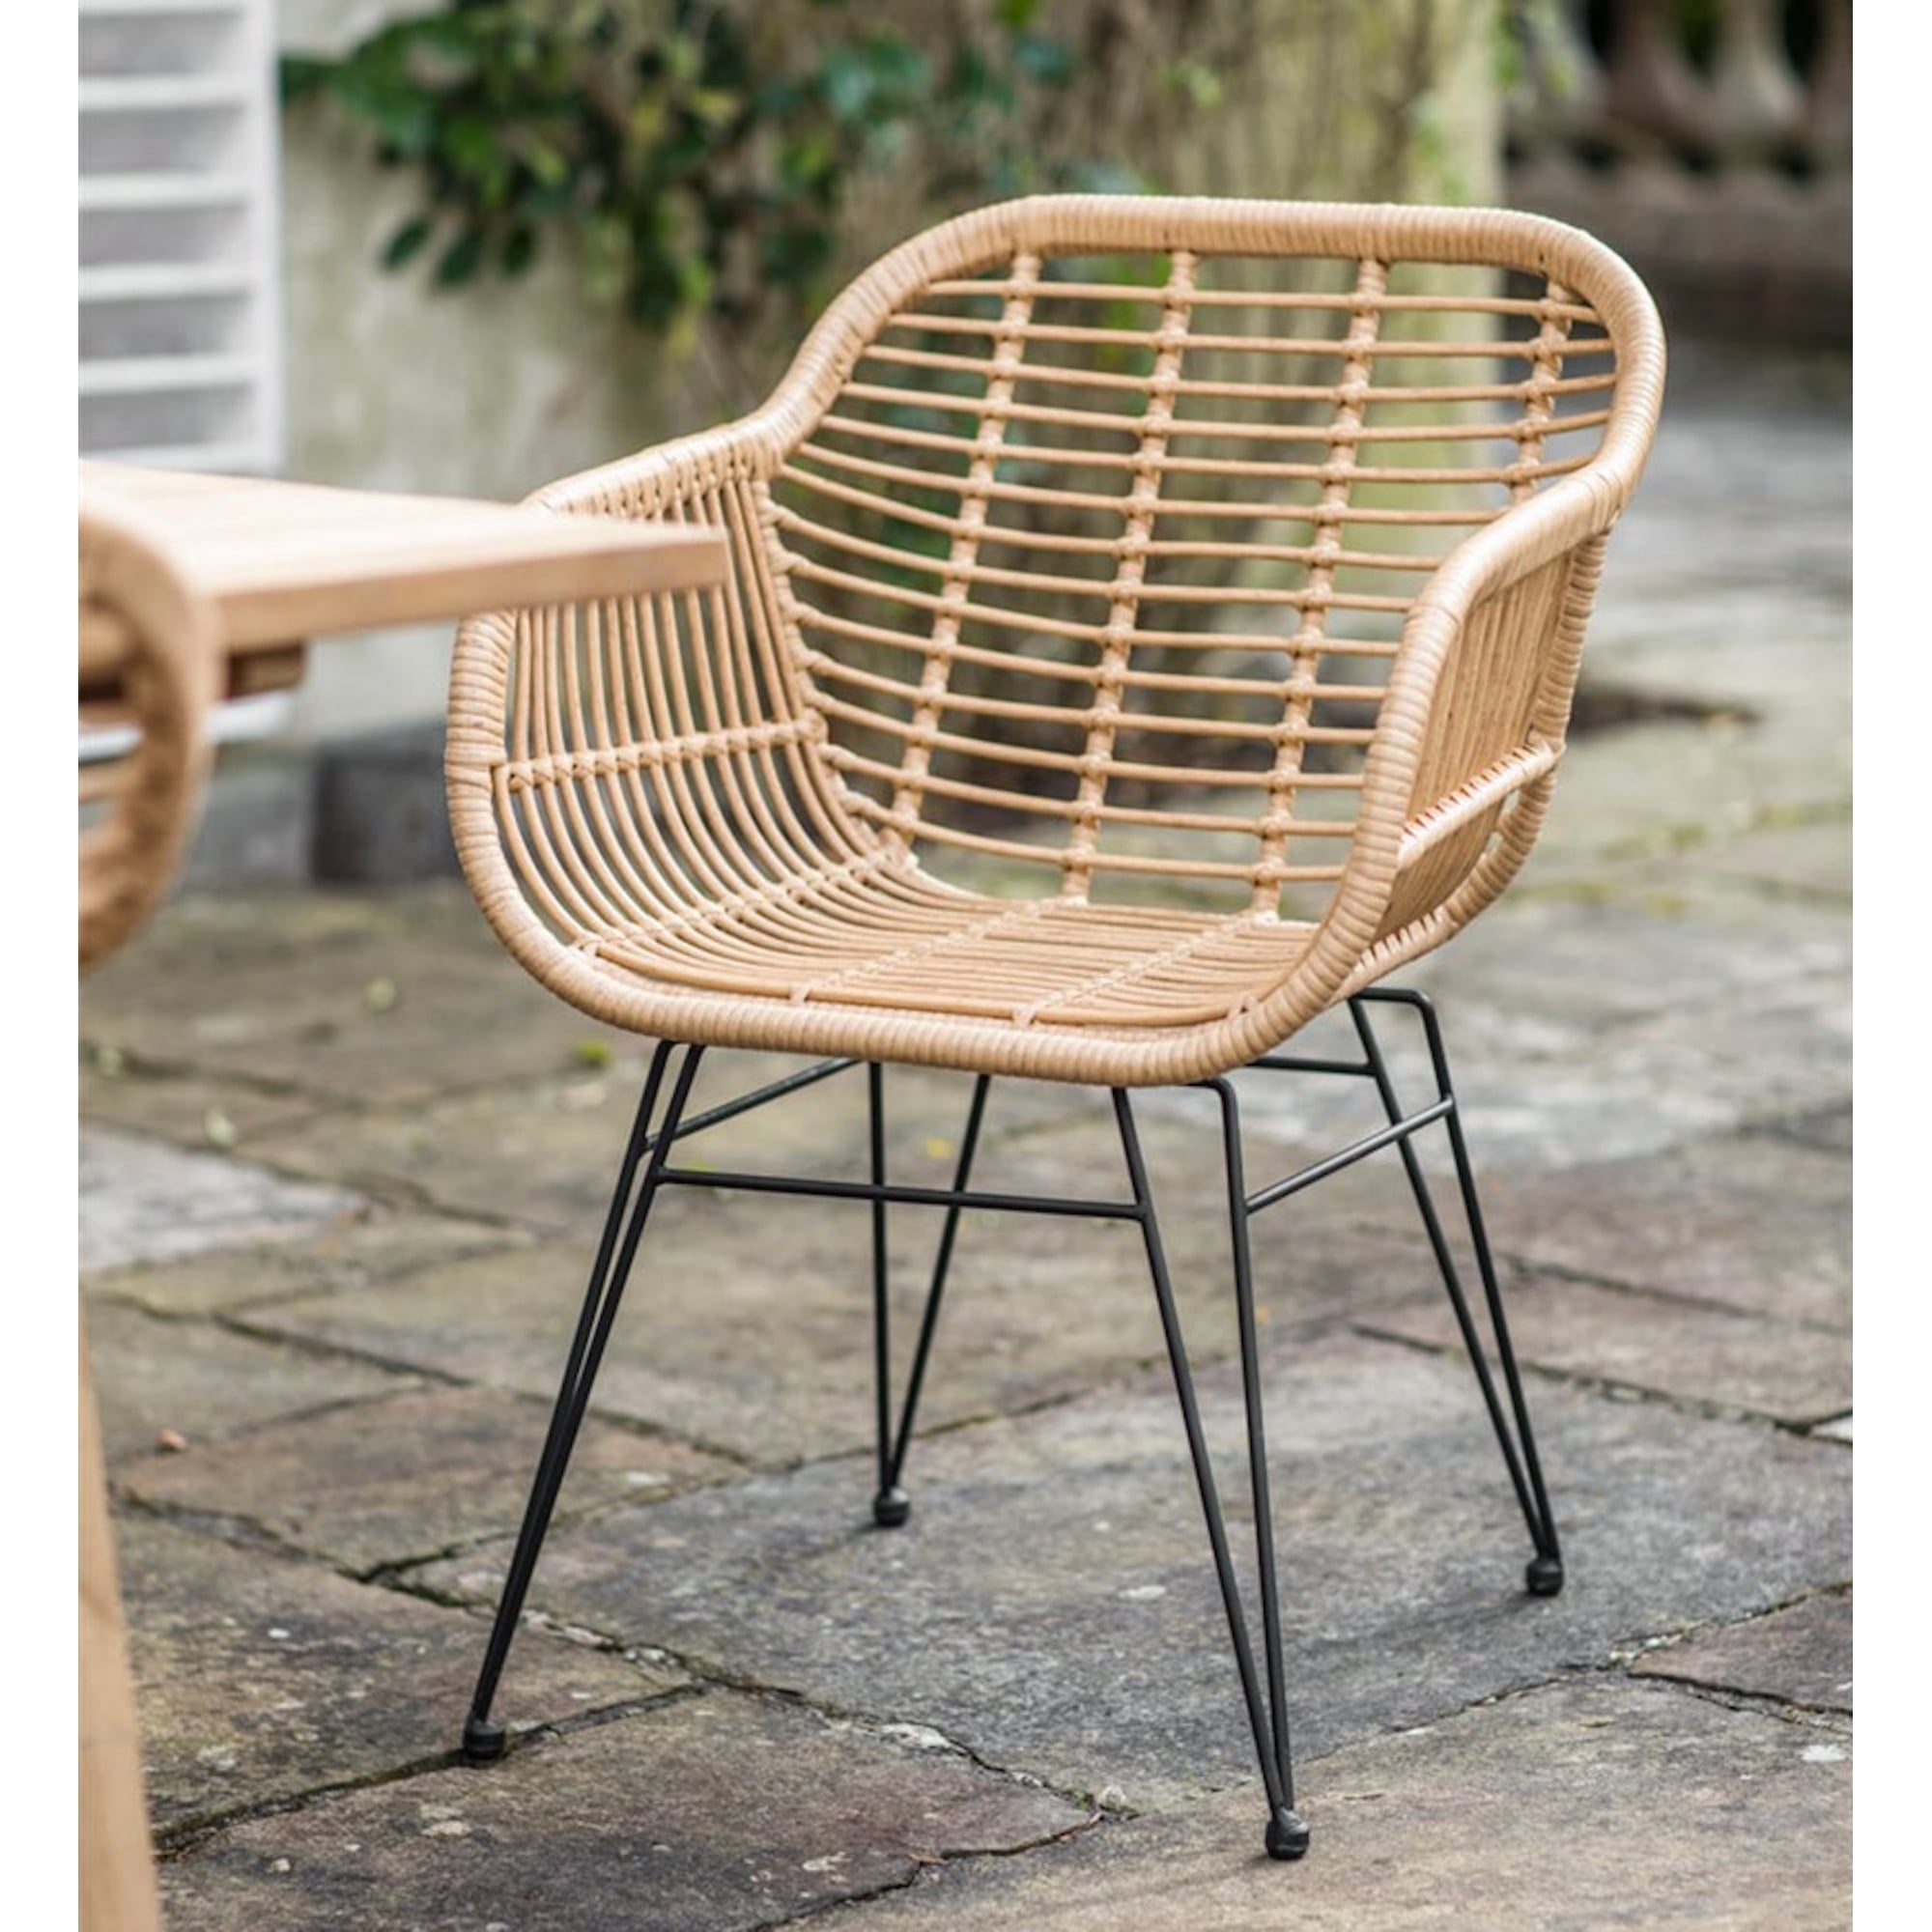 Lx al fresco hampstead all weather bamboo chairs set of 2